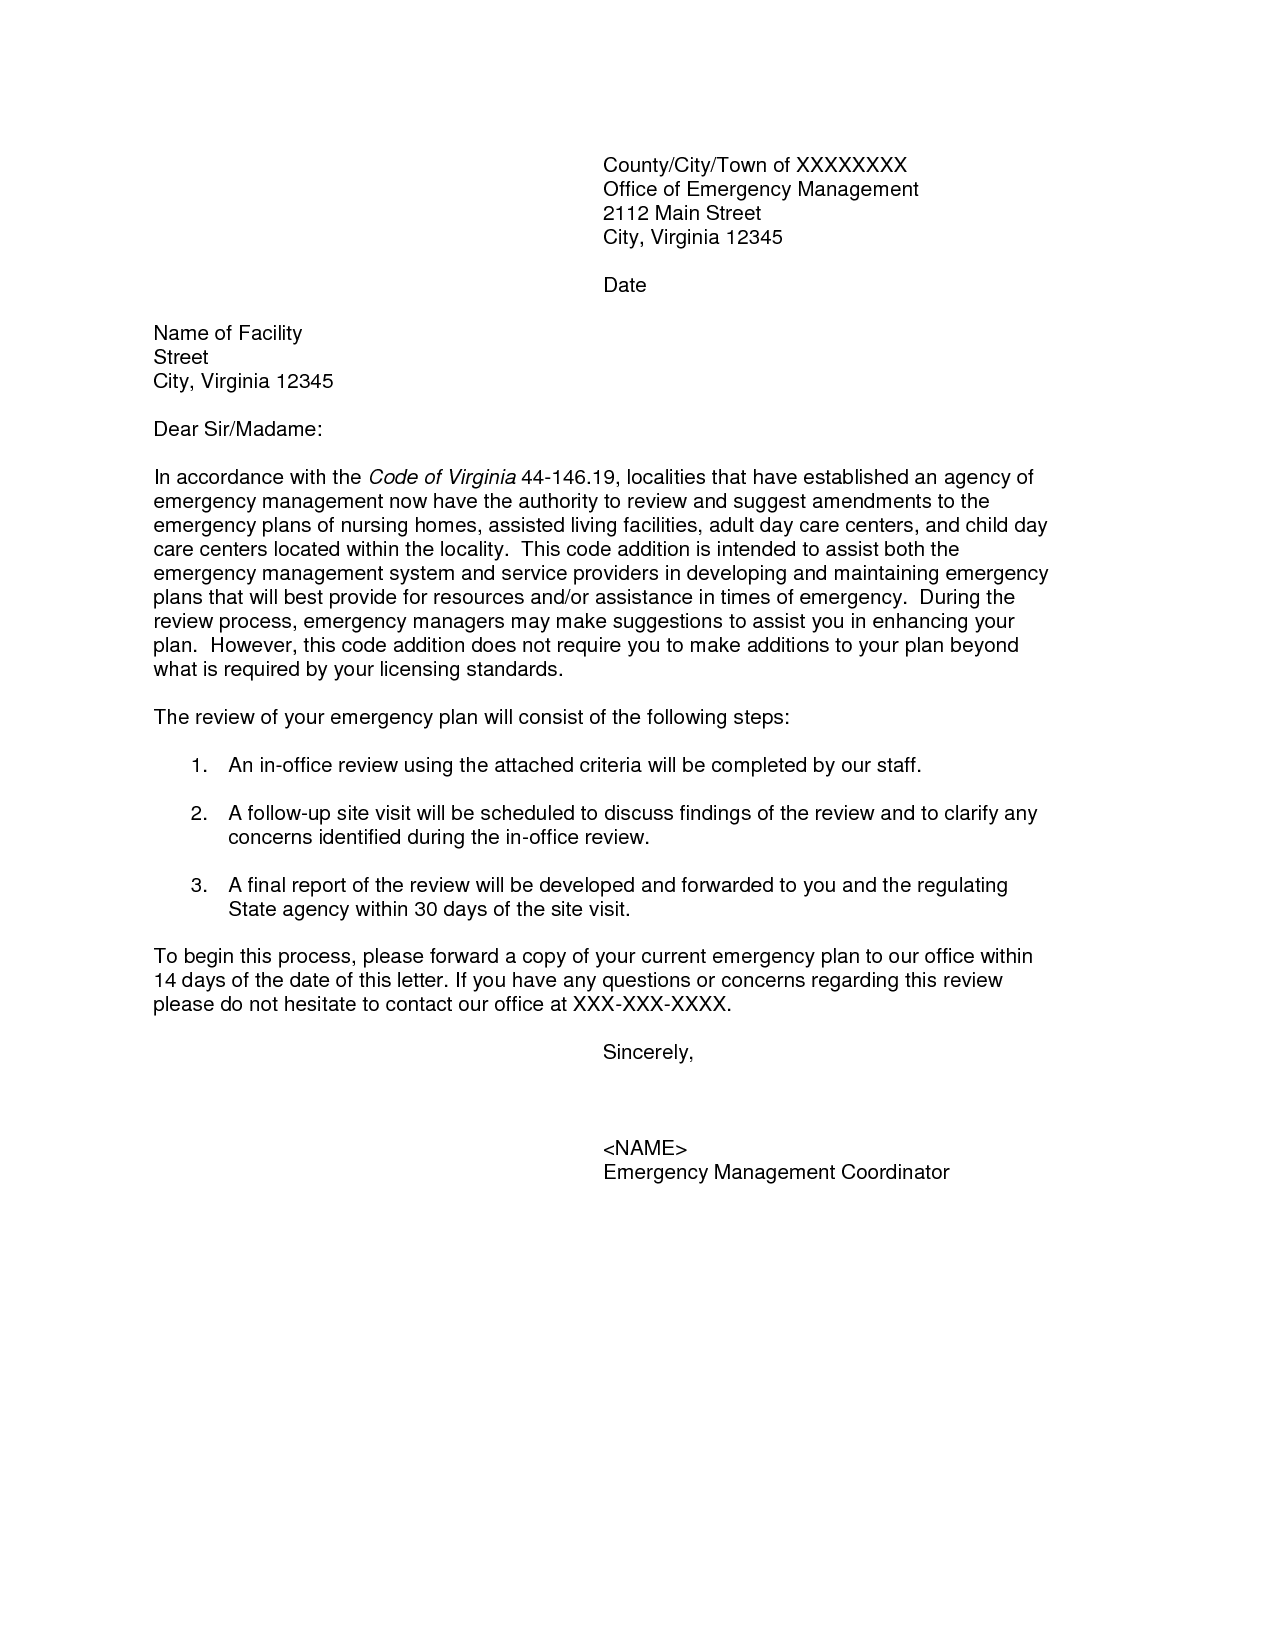 Sample Business Letter Excel Examples of Reference Letters Request – Sample Reference Letter for Business